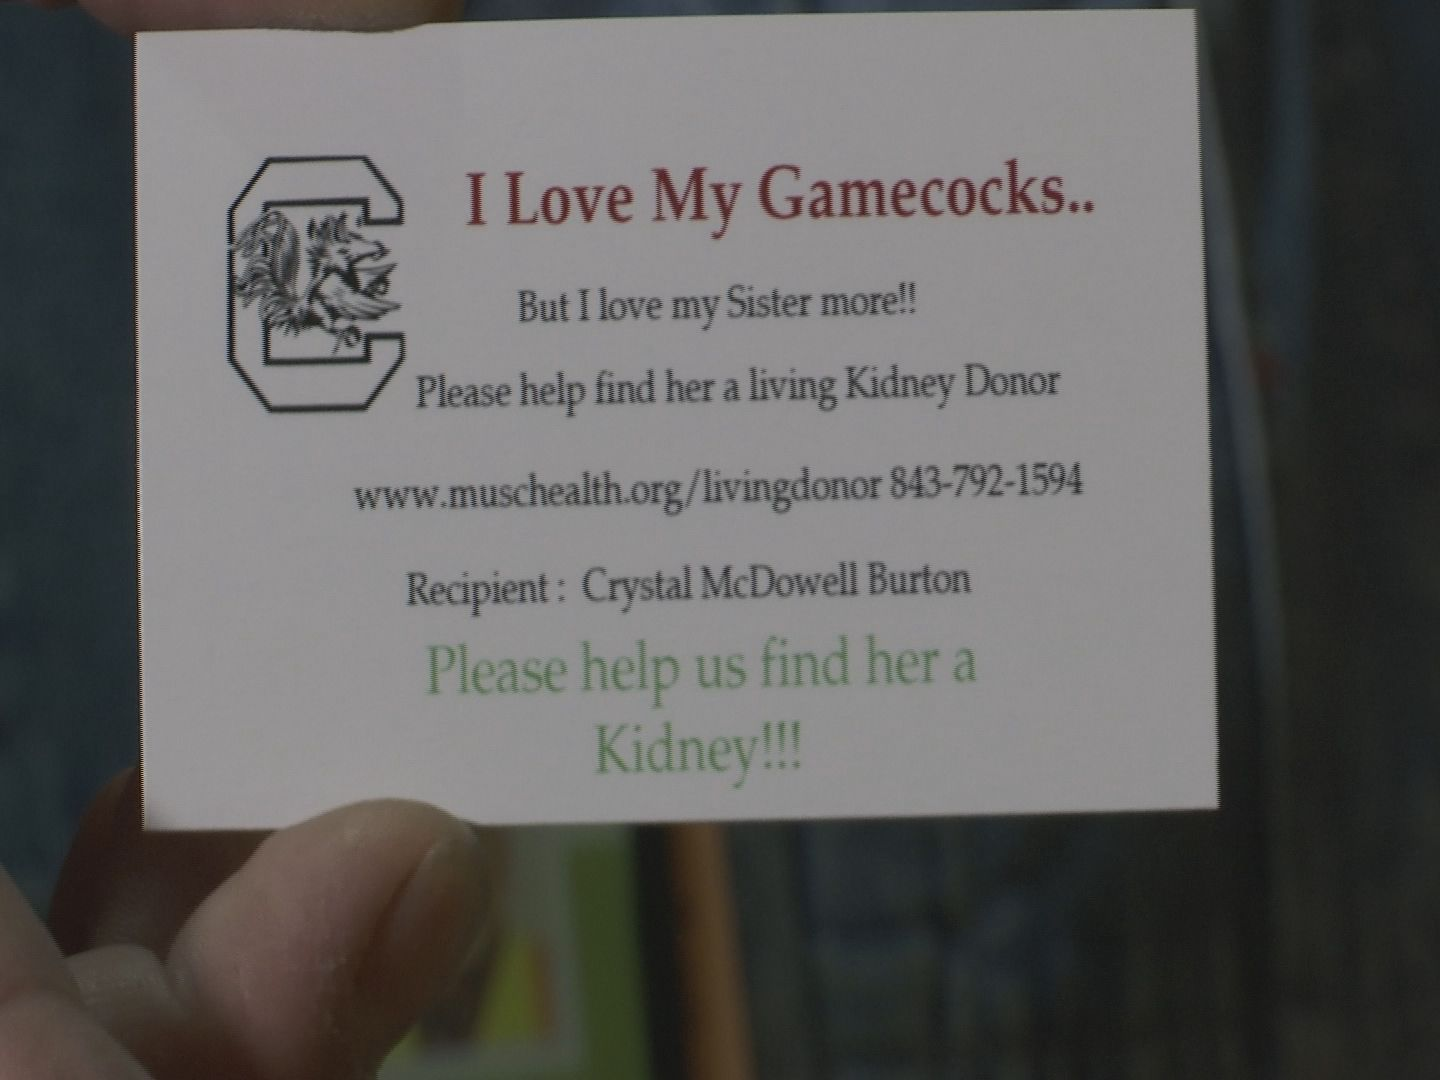 Gamecock fans ask the Gamecock Nation for help finding kidney donor